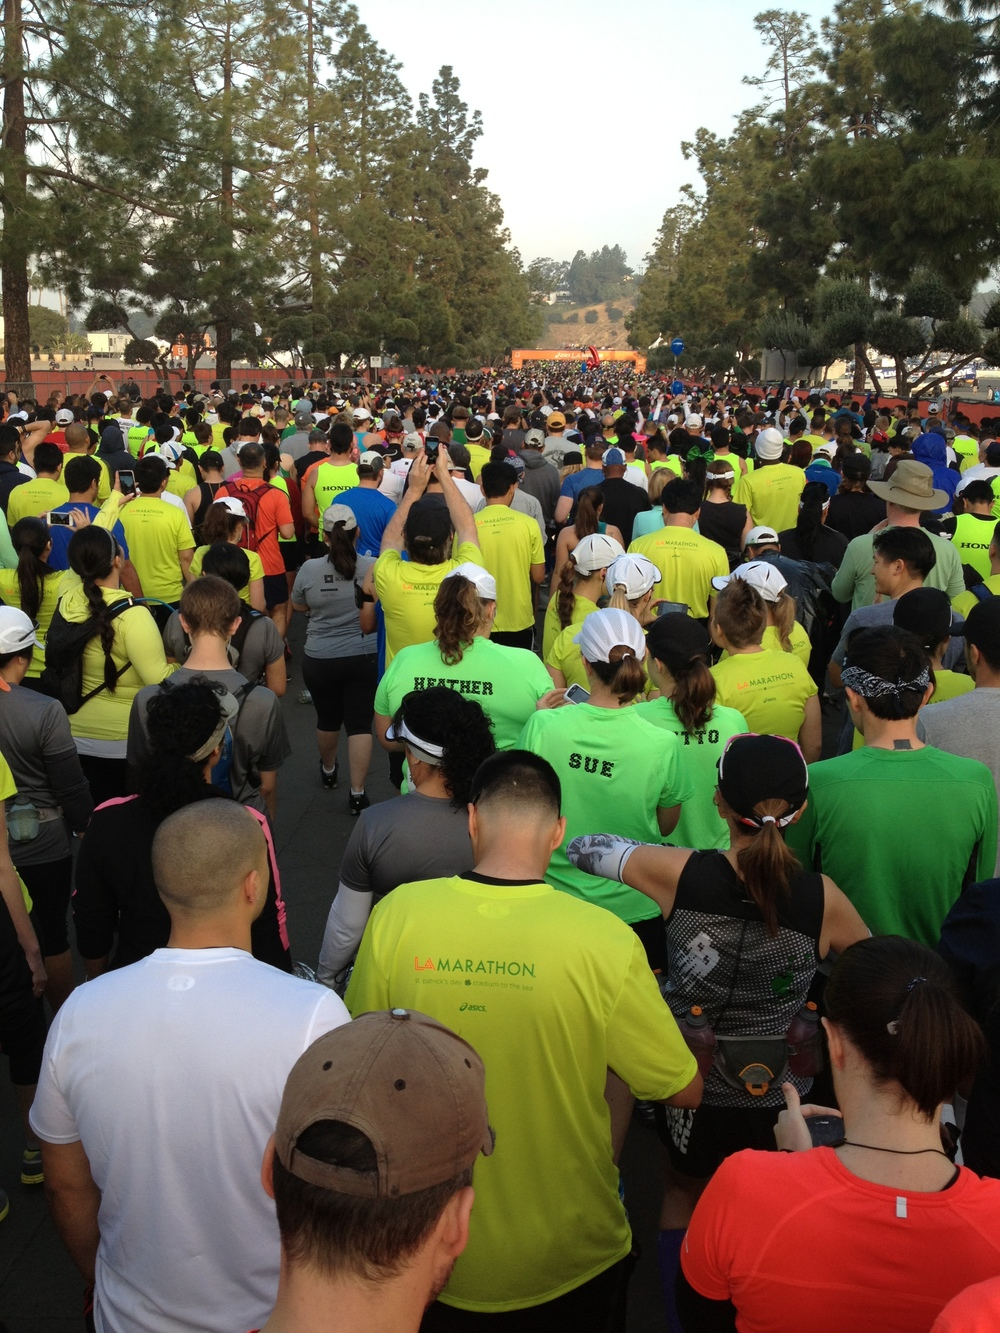 Crowds gather at the starting line of the 2013 Los Angeles Marathon.